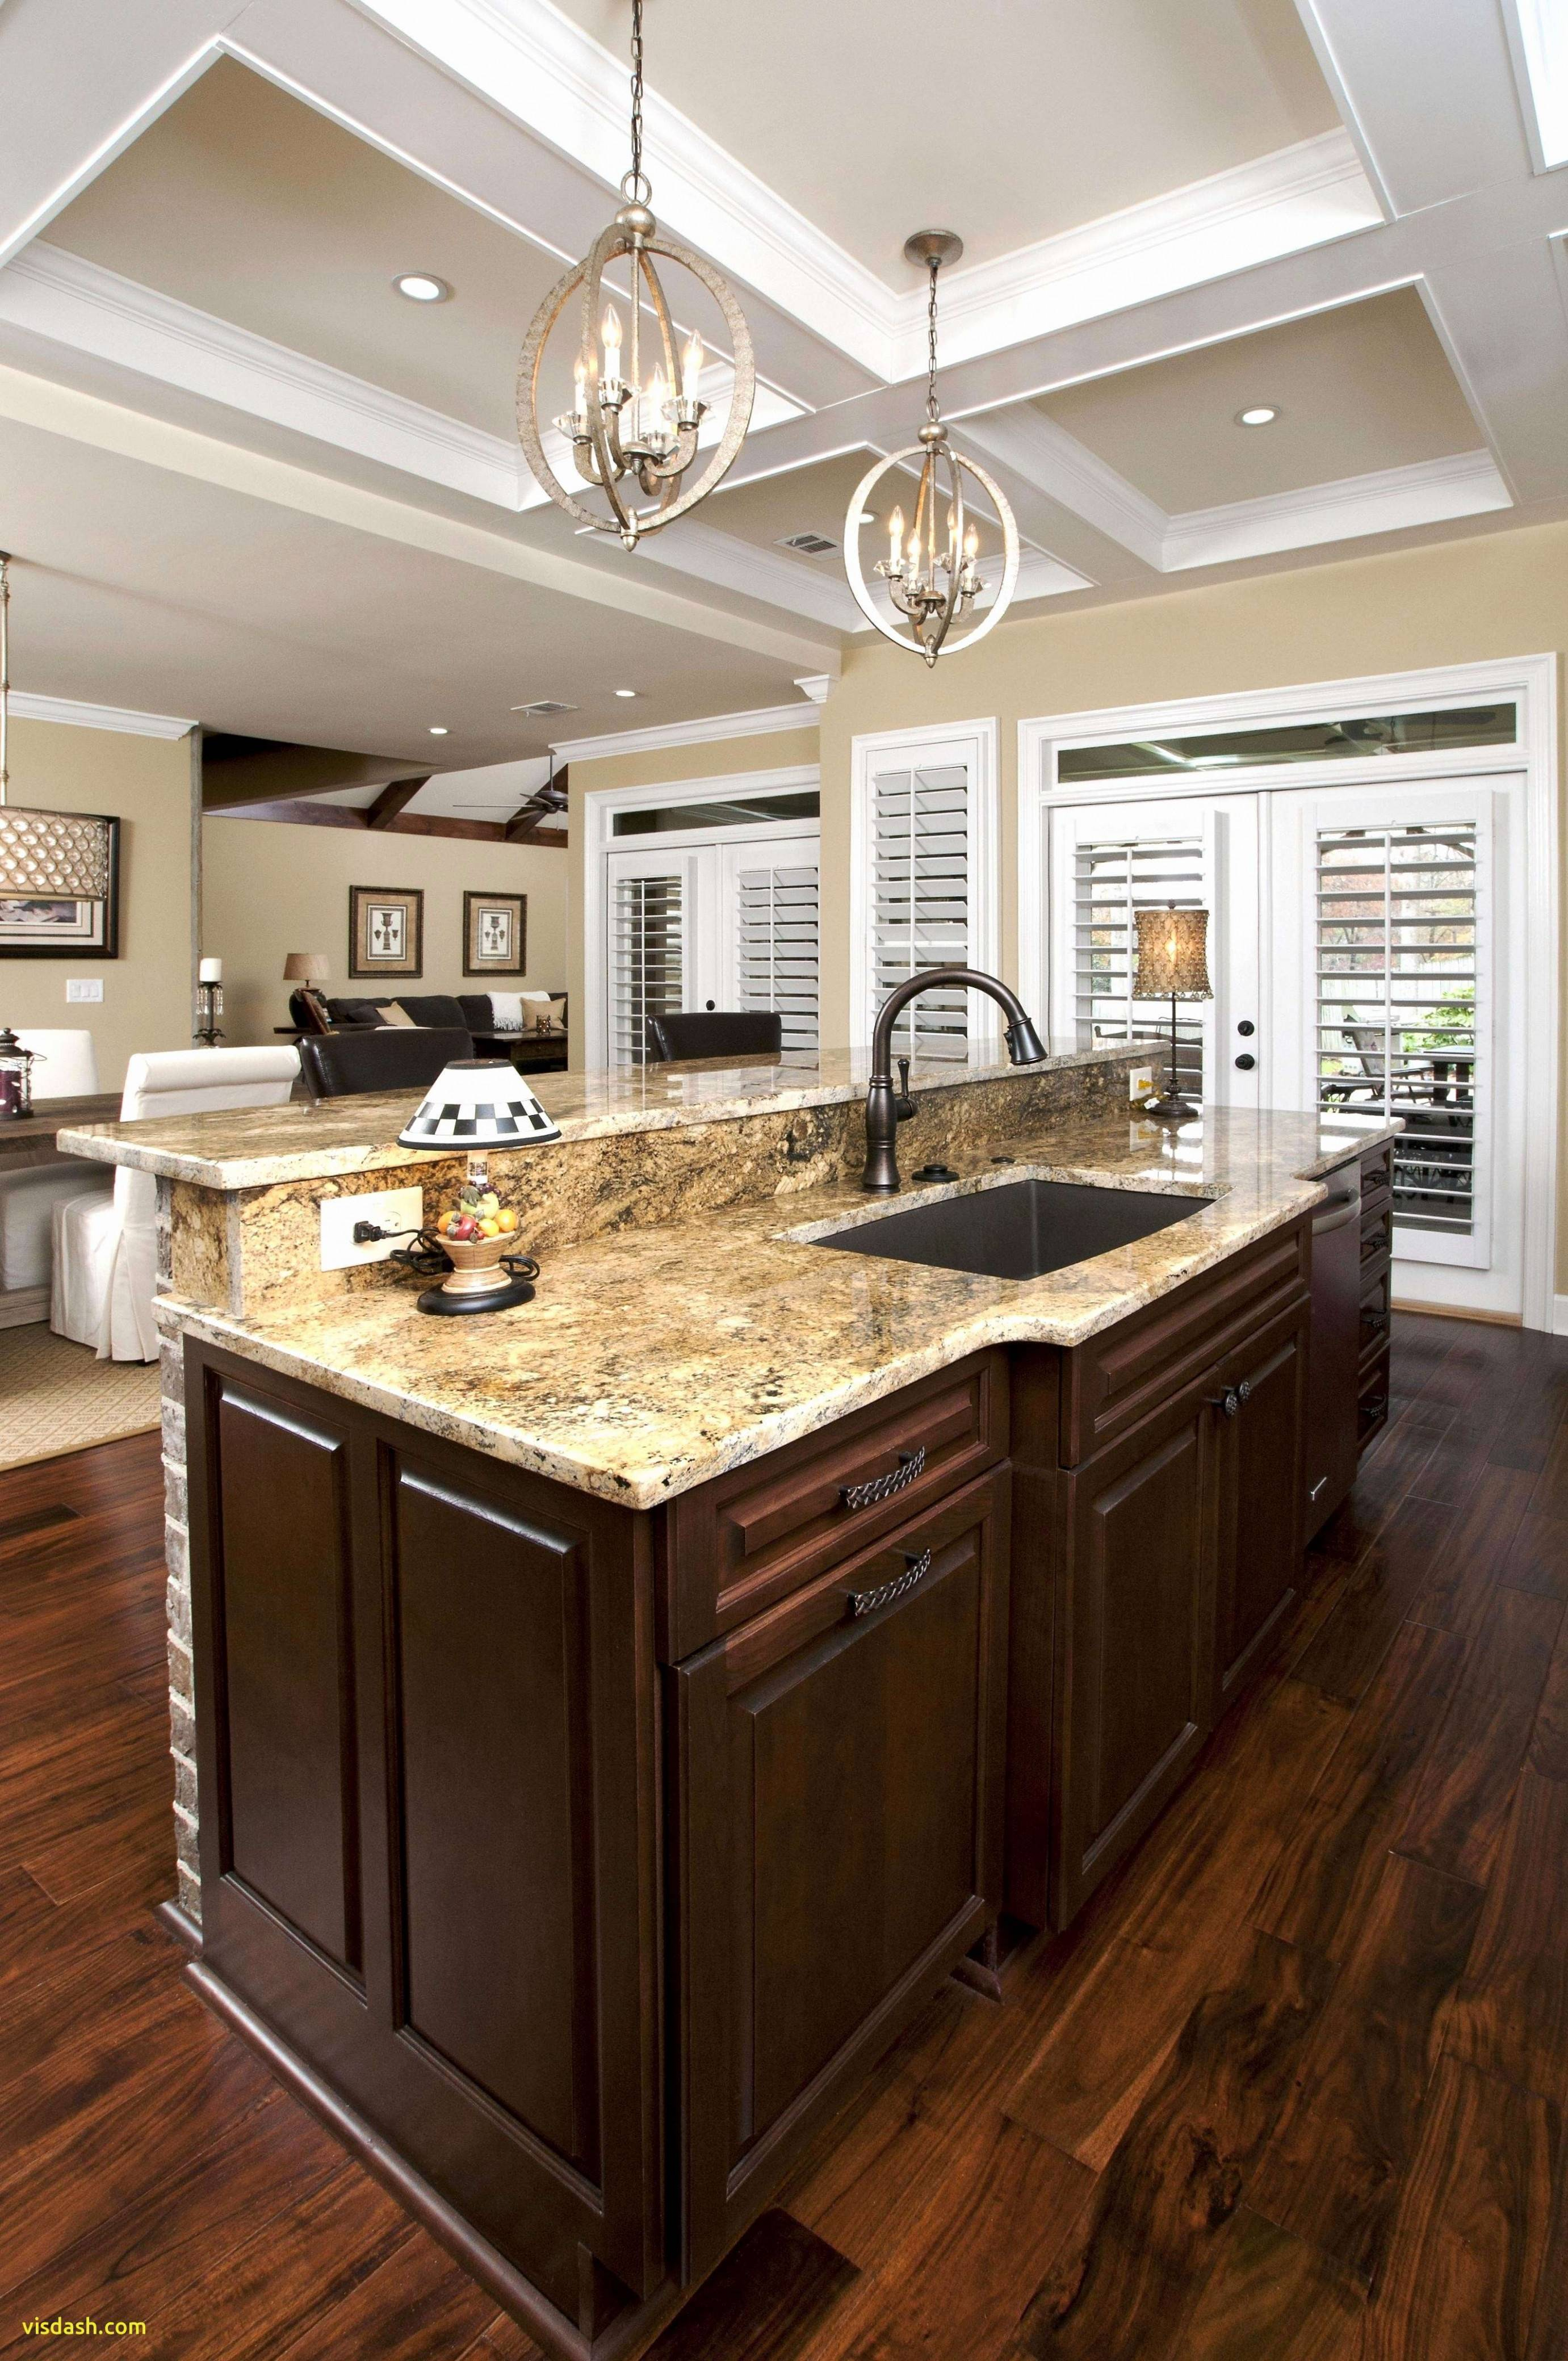 white kitchen with hardwood floors of white kitchen cabinets jackolanternliquors within cabinet for kitchen best exclusive kitchen designs alluring kitchen cabinet 0d bright lights